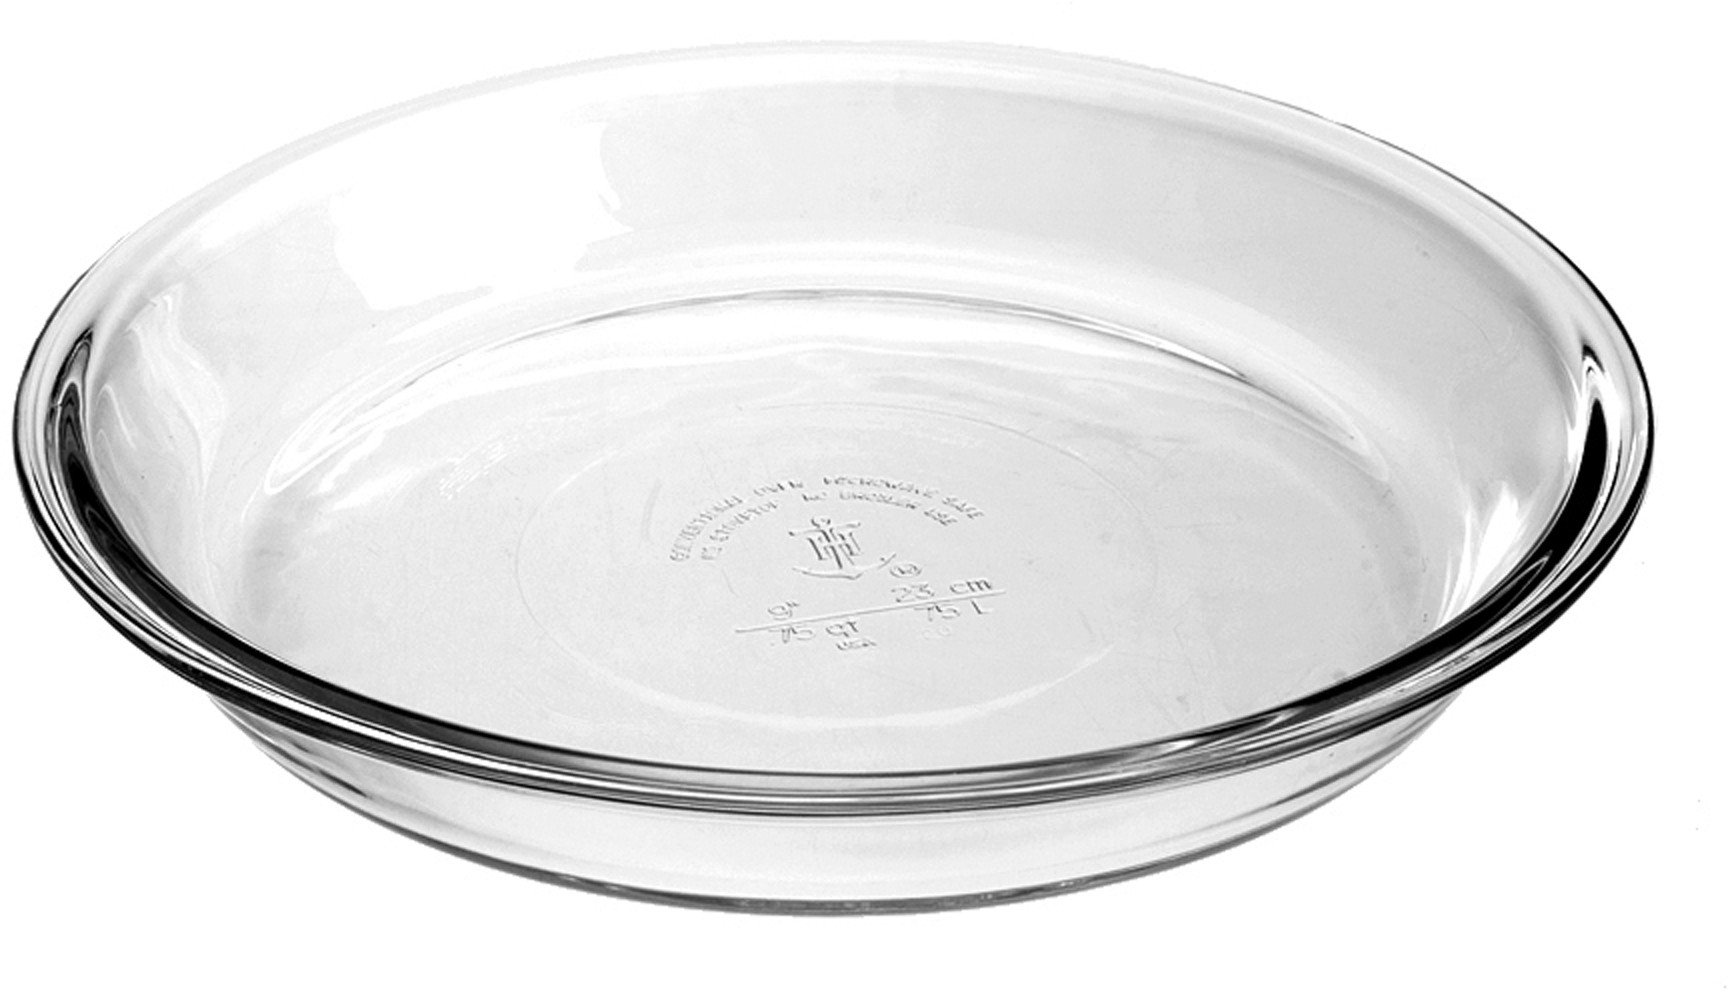 Anchor Hocking Glass Pie Dish, Set of 2 by Anchor Hocking (Image #1)